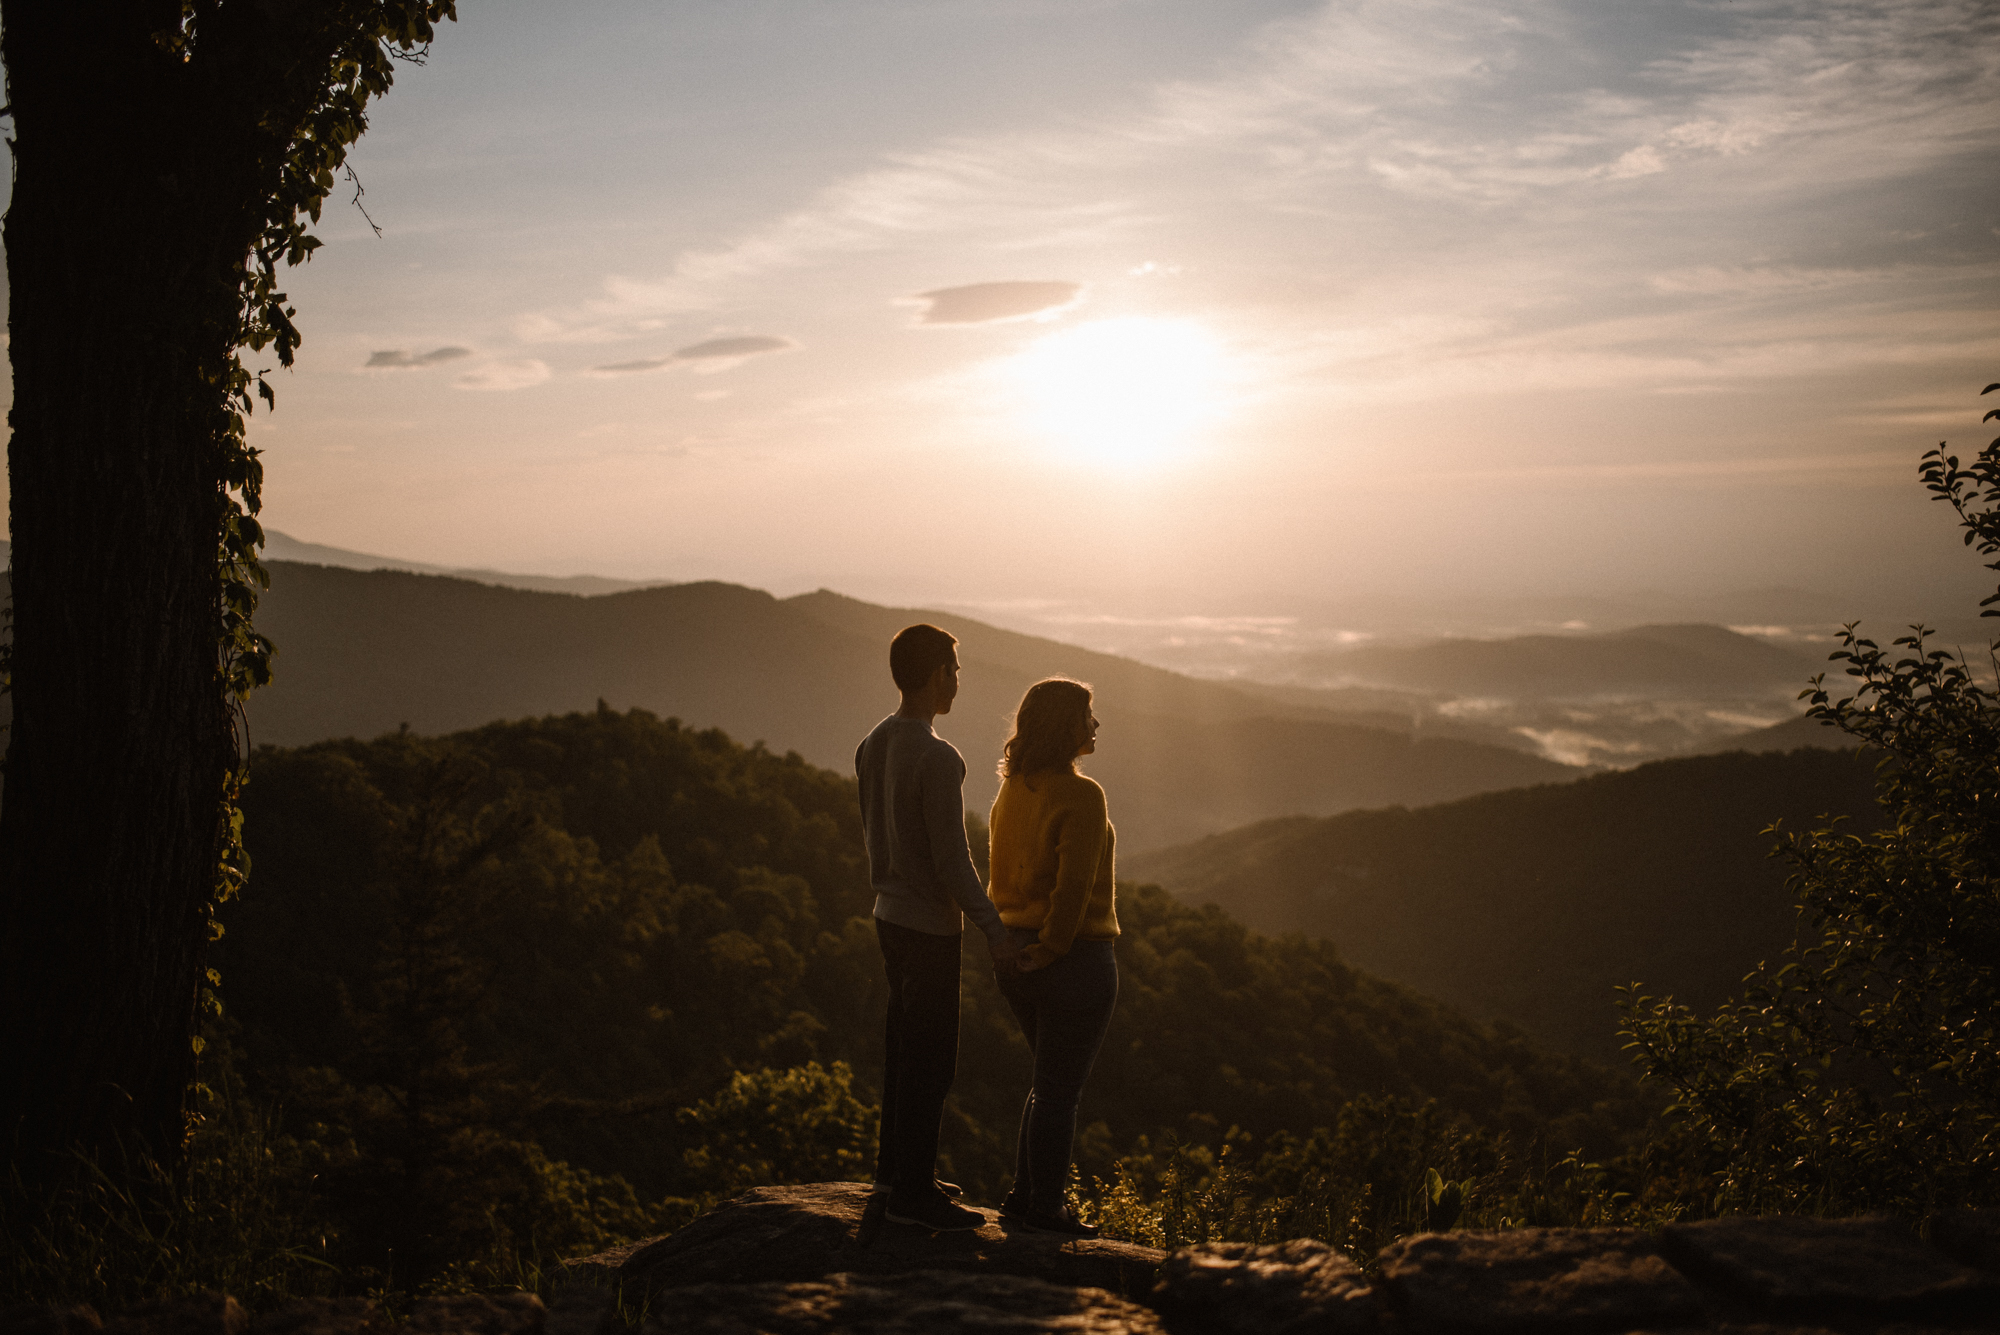 Sloane and Evan Sunrise Engagement Session in Shenandoah National Park - Things to Do in Luray Virginia - Adventurous Couple Photo Shoot White Sails Creative_16.jpg